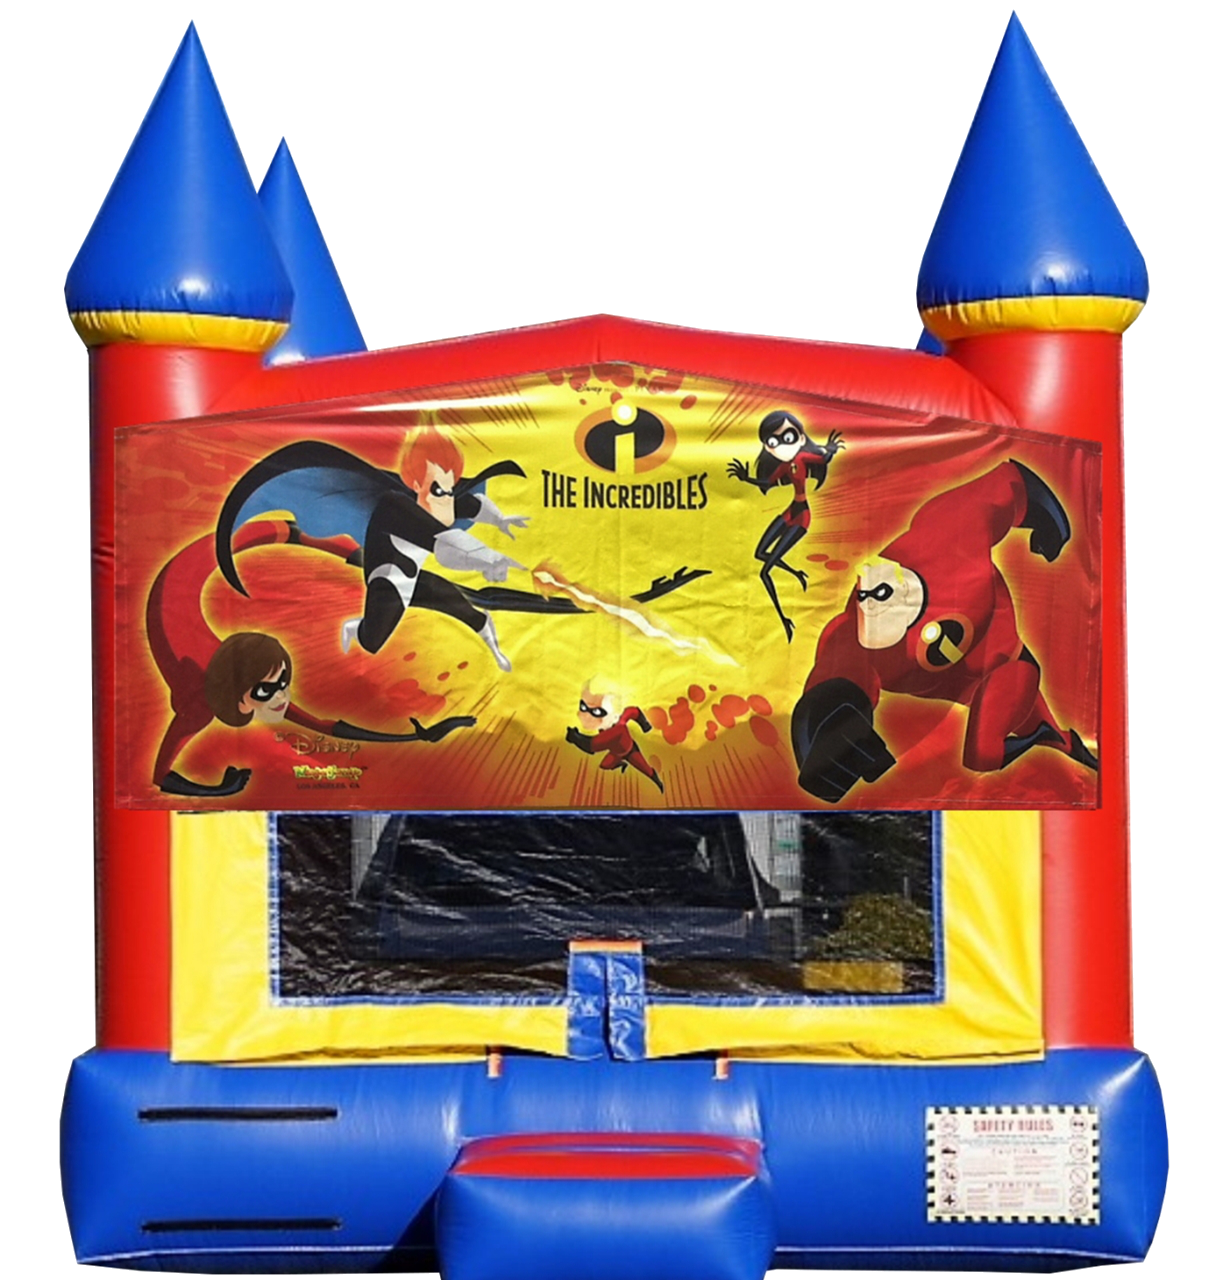 The incredibles bounce house rentals Murfreesboro